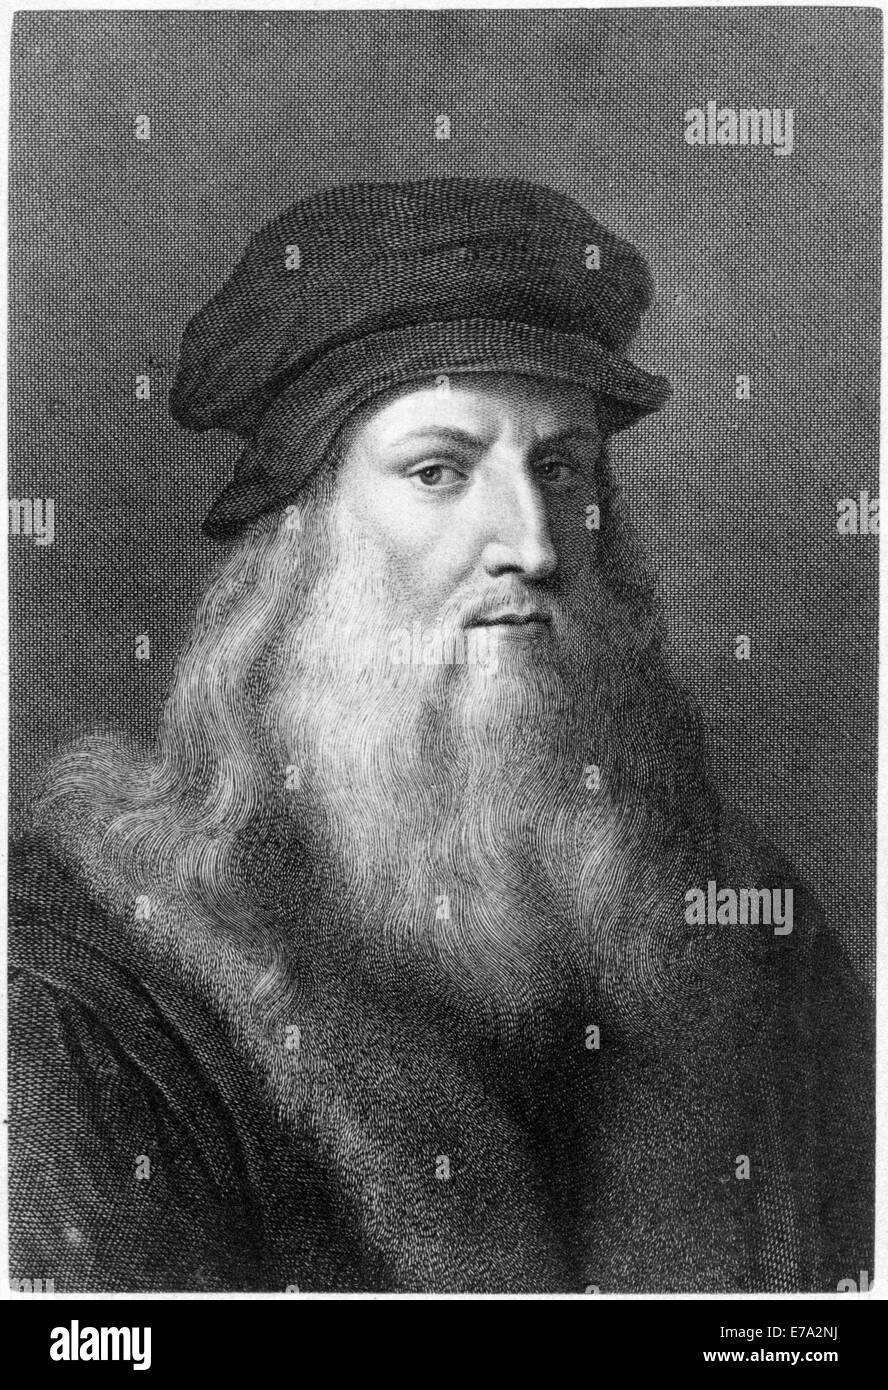 Leonardo da Vinci (1452-1519), Italian Painter, Sculptor, Architect, Engineer & Scientist, Portrait, Engraving - Stock Image